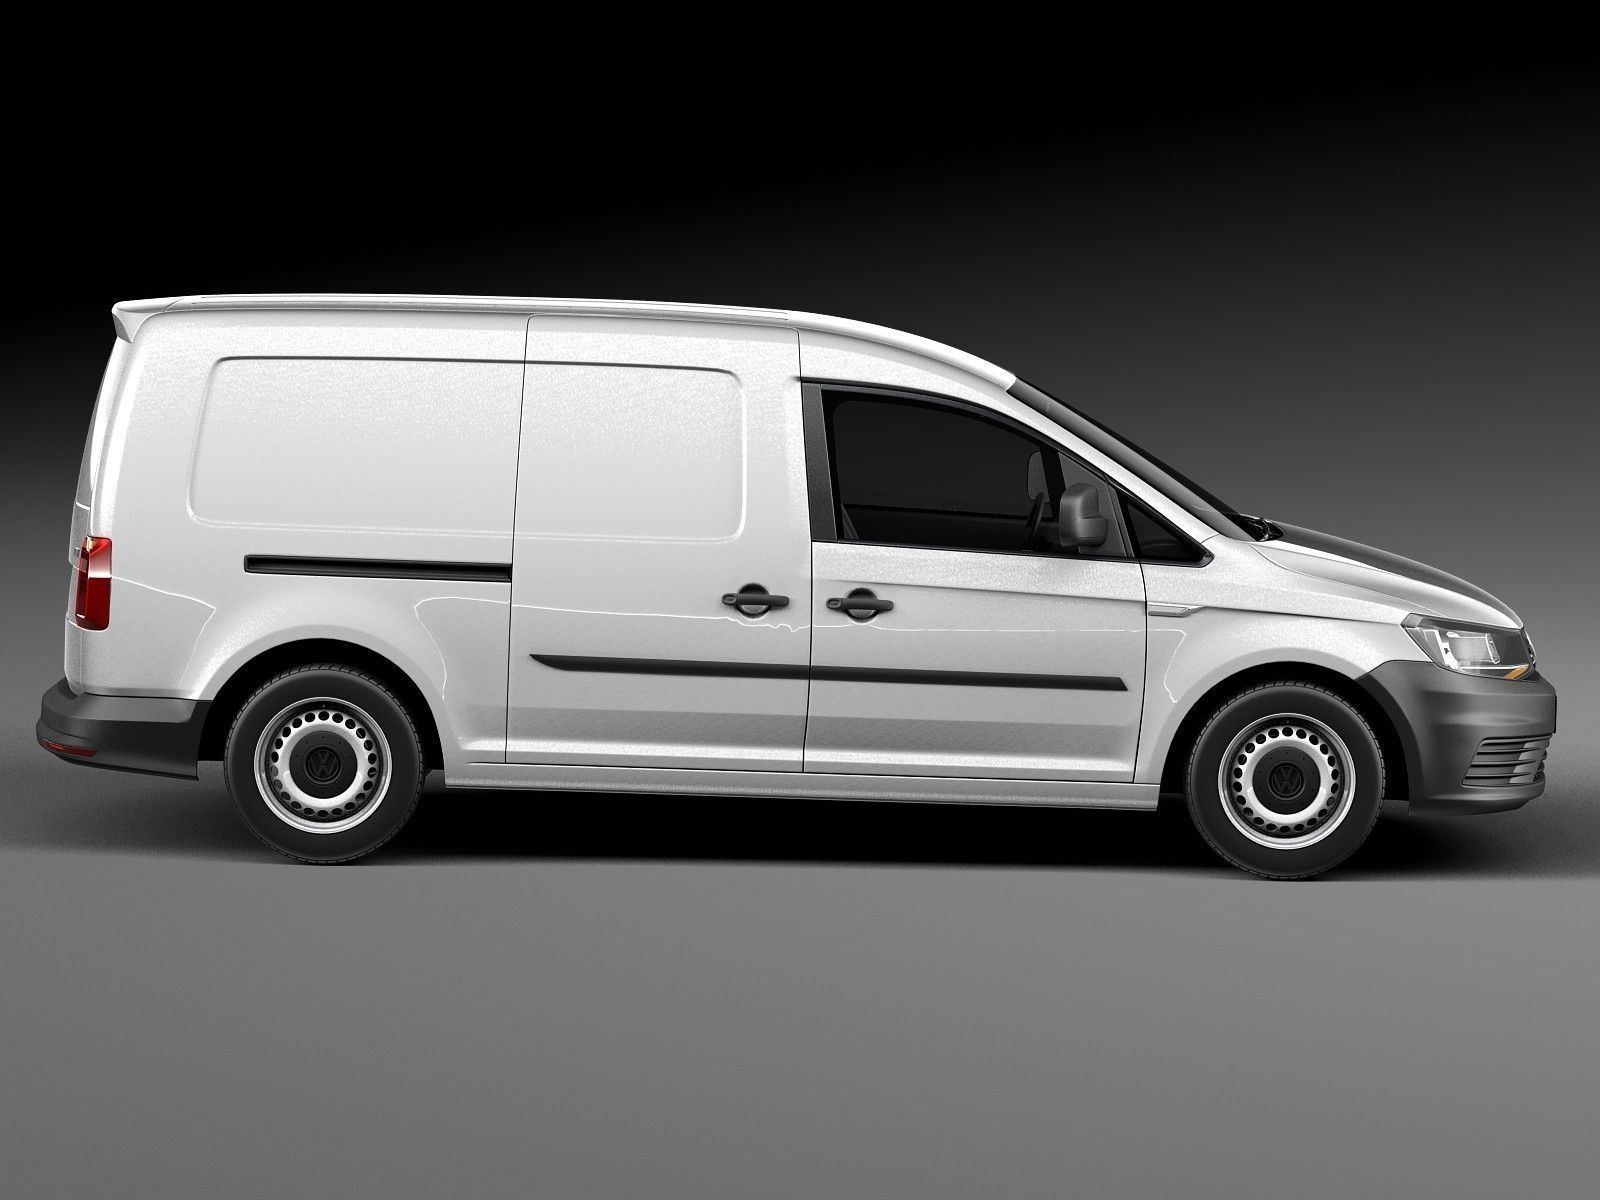 volkswagen caddy maxi van 2016 3d model max obj 3ds fbx c4d lwo lw lws. Black Bedroom Furniture Sets. Home Design Ideas